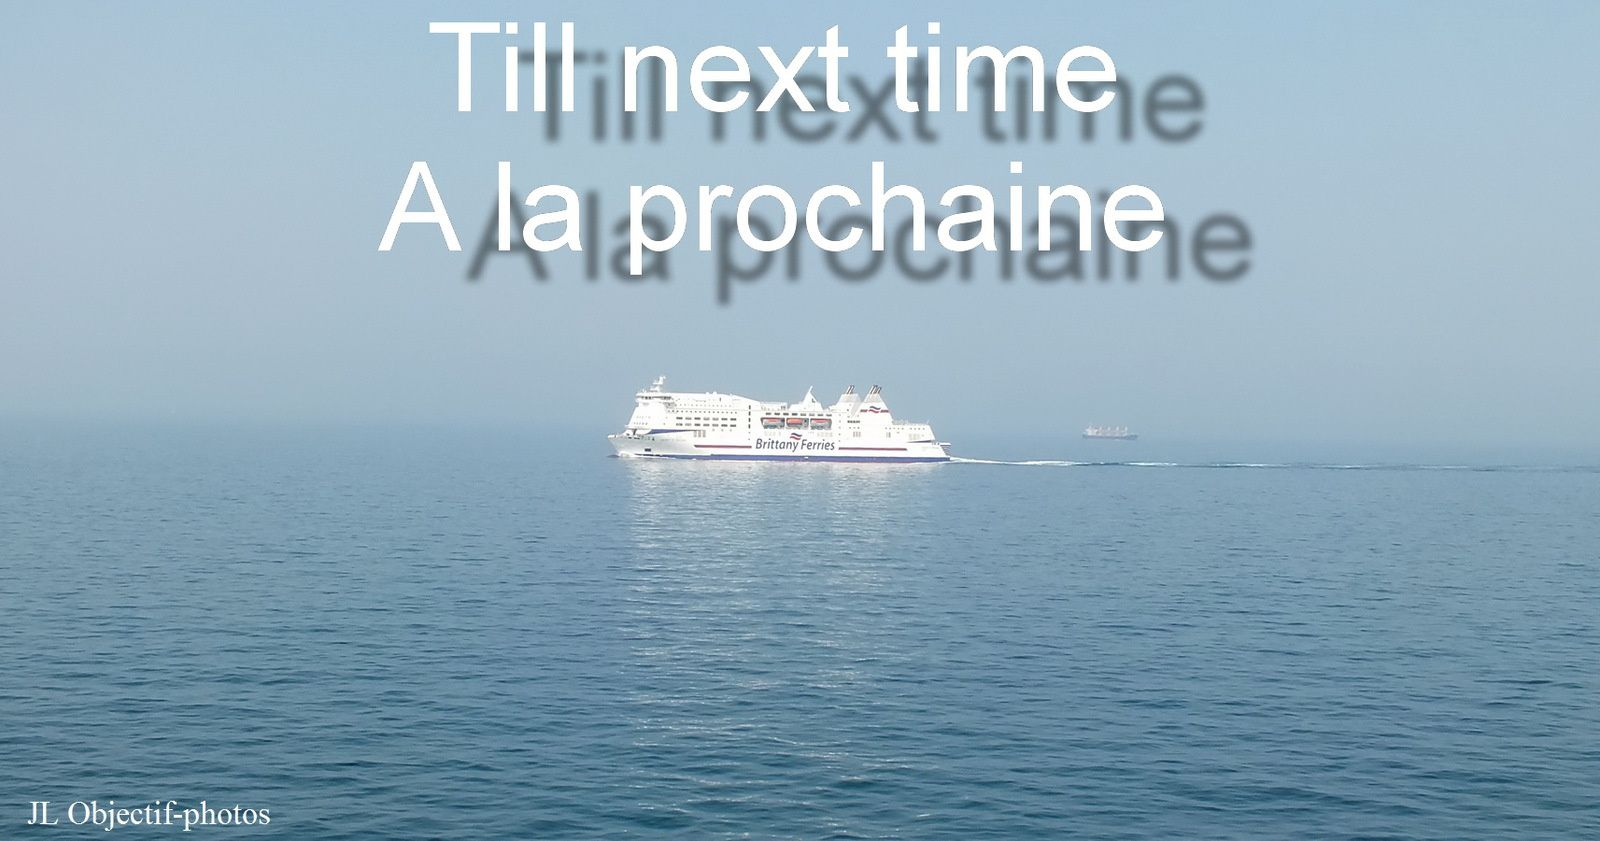 From Portsmouths to Ouistreham